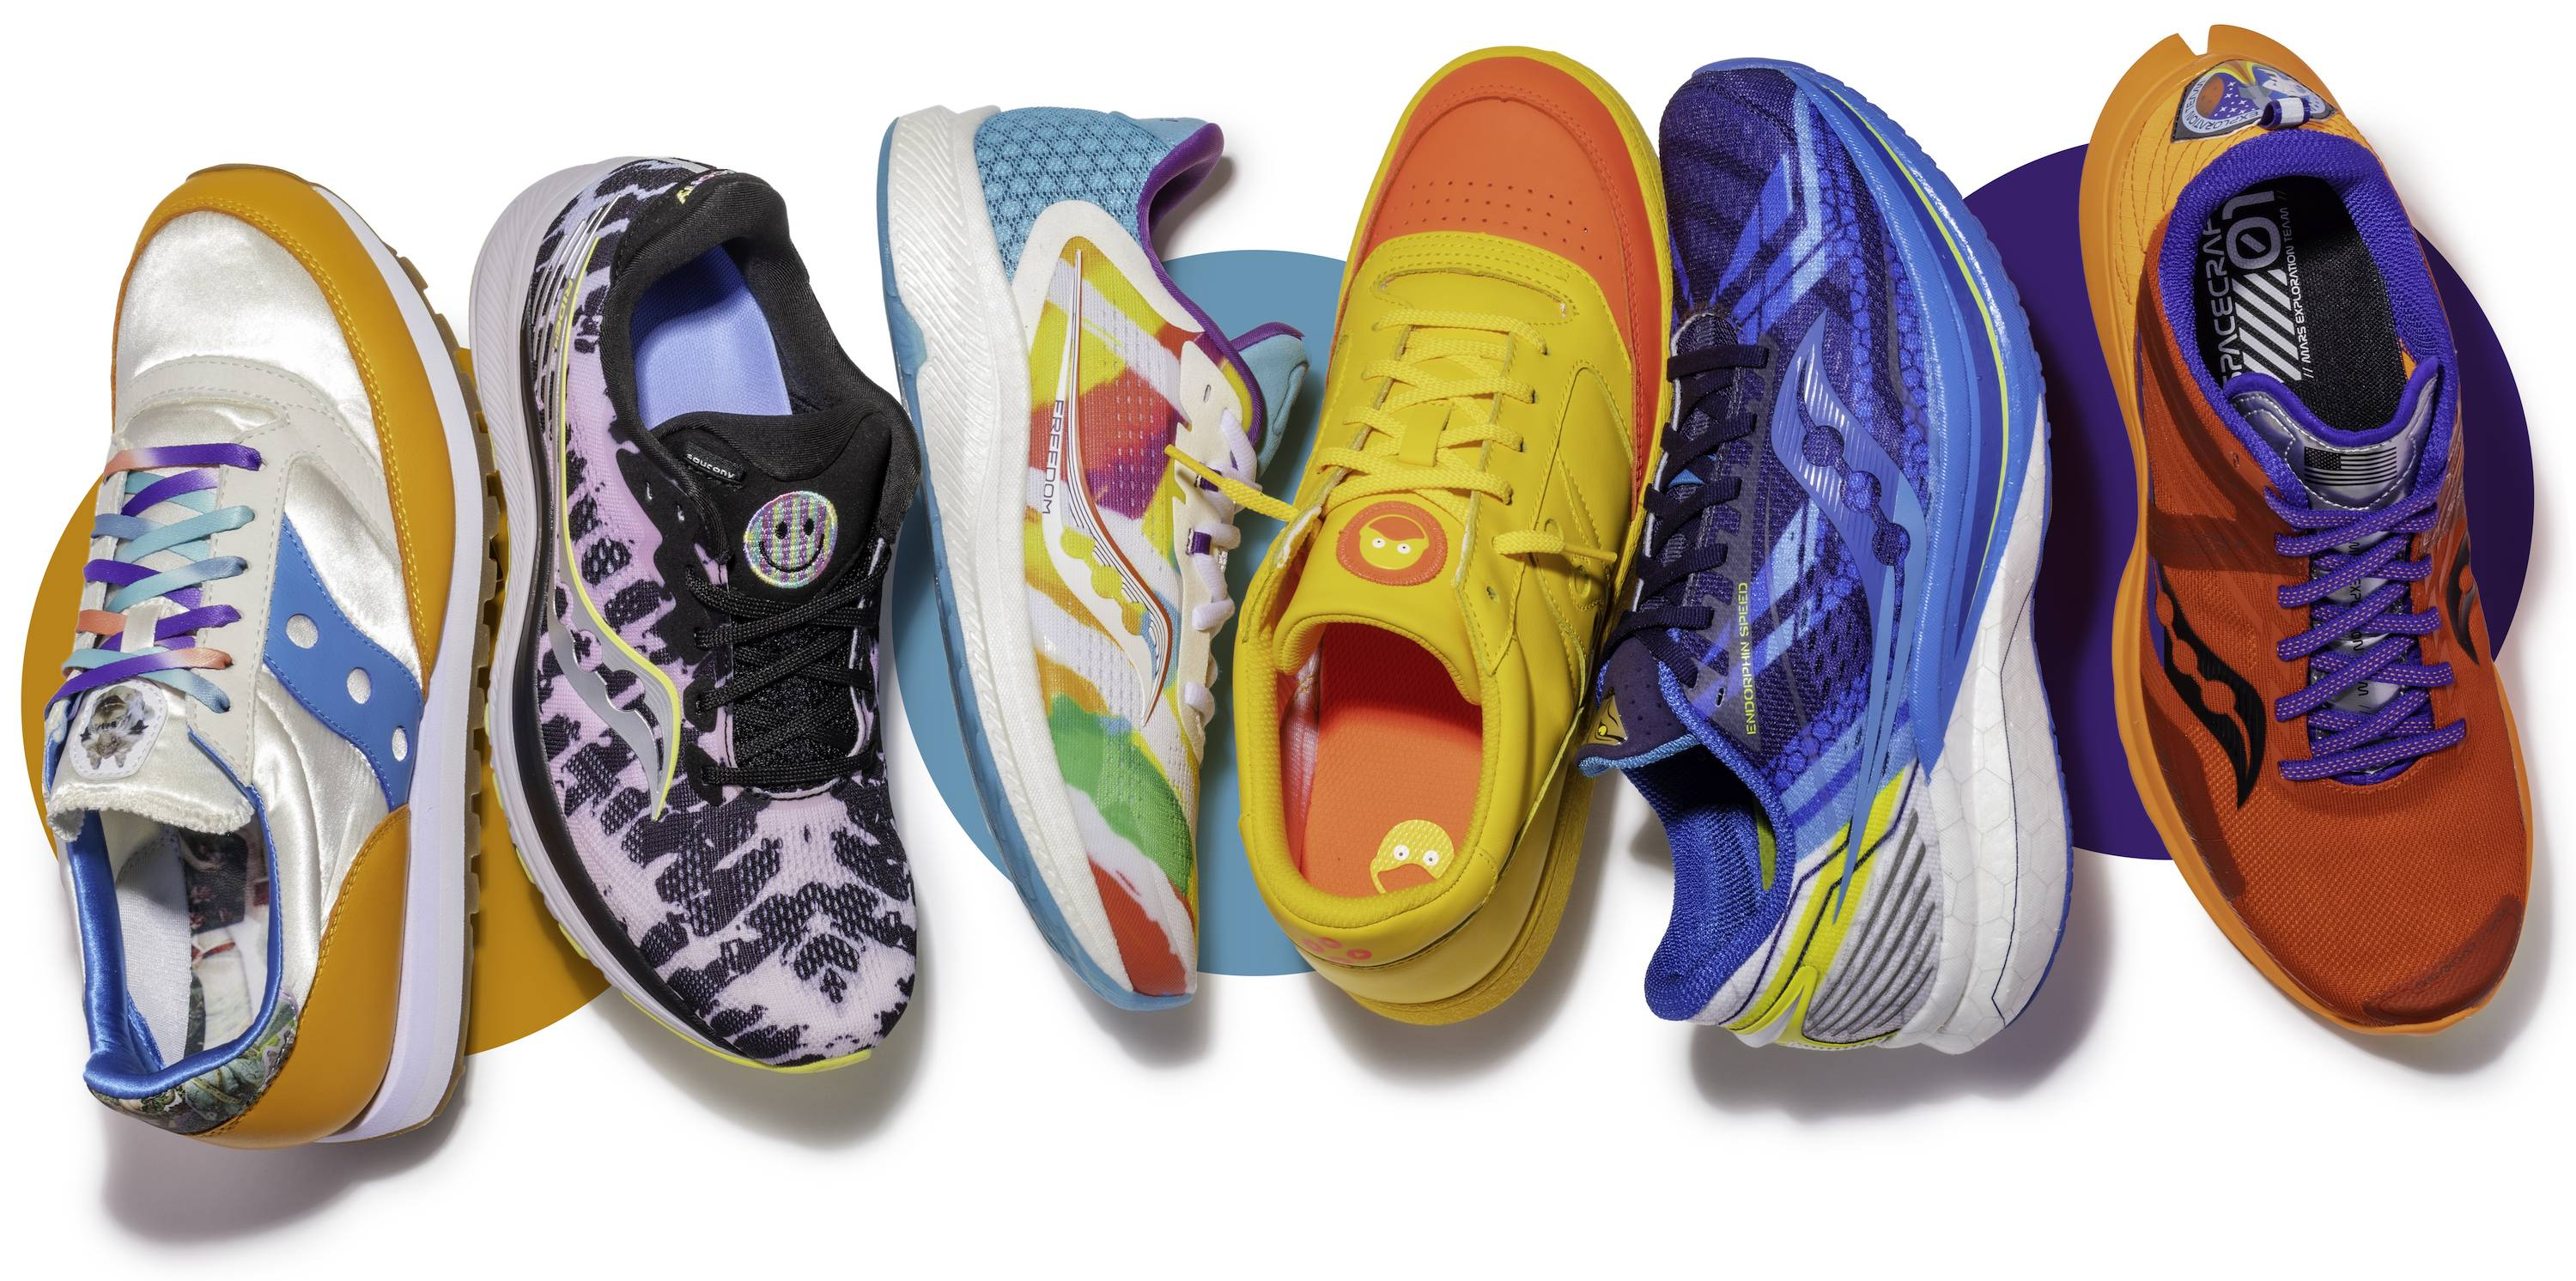 Run for Good Saucony Boston shoes